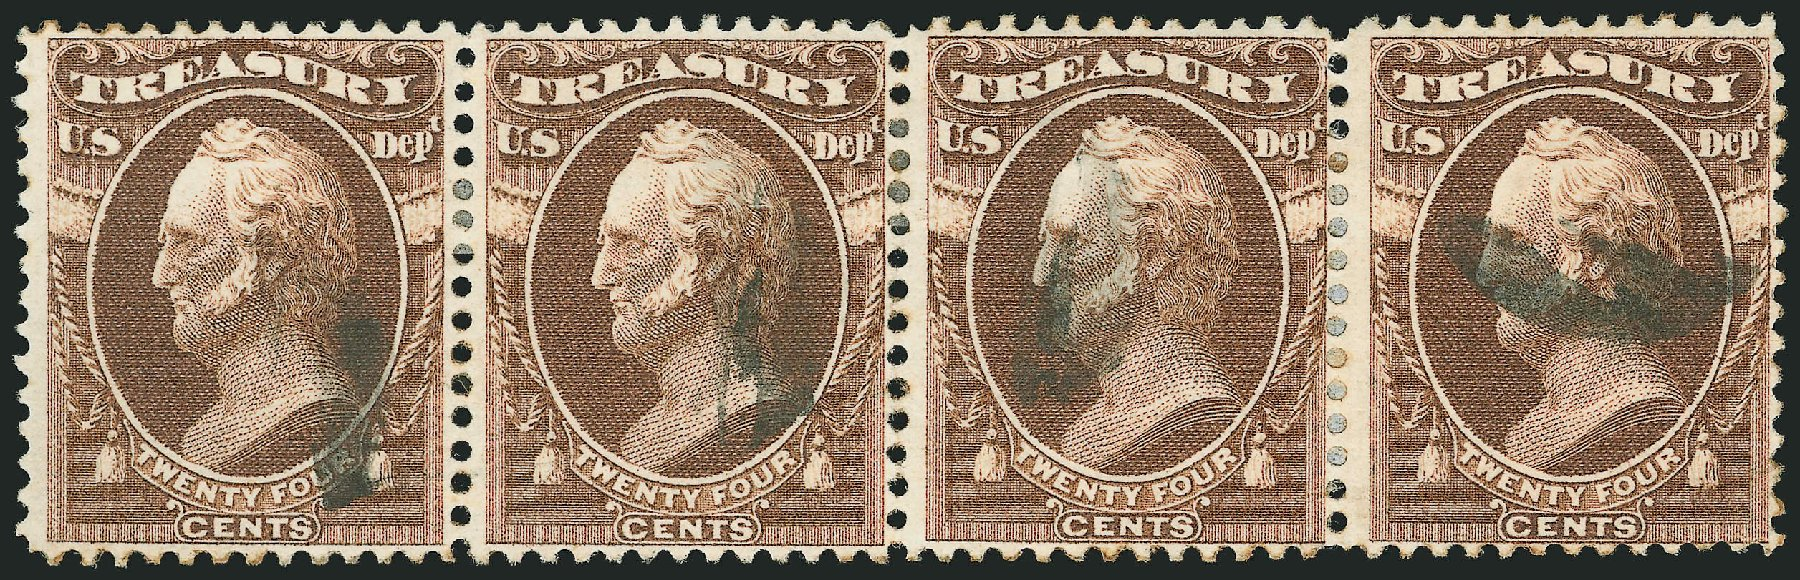 Prices of US Stamp Scott Cat. # O80 - 1873 24c Treasury Official. Robert Siegel Auction Galleries, Nov 2014, Sale 1085, Lot 4130